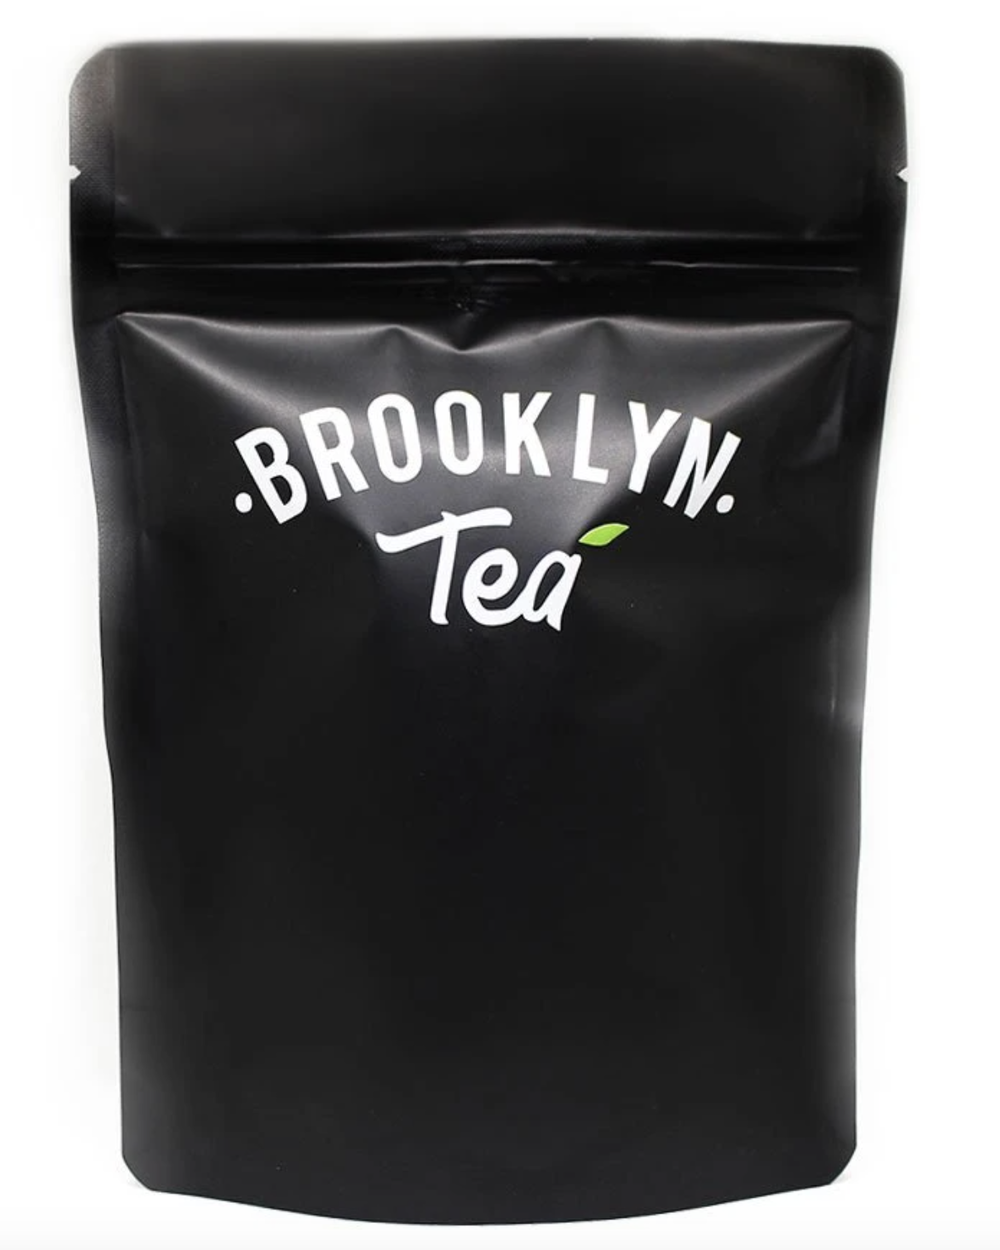 - Brooklyn TeaThey sell their loose-leaf tea online and have a tea room located in Brooklyn.